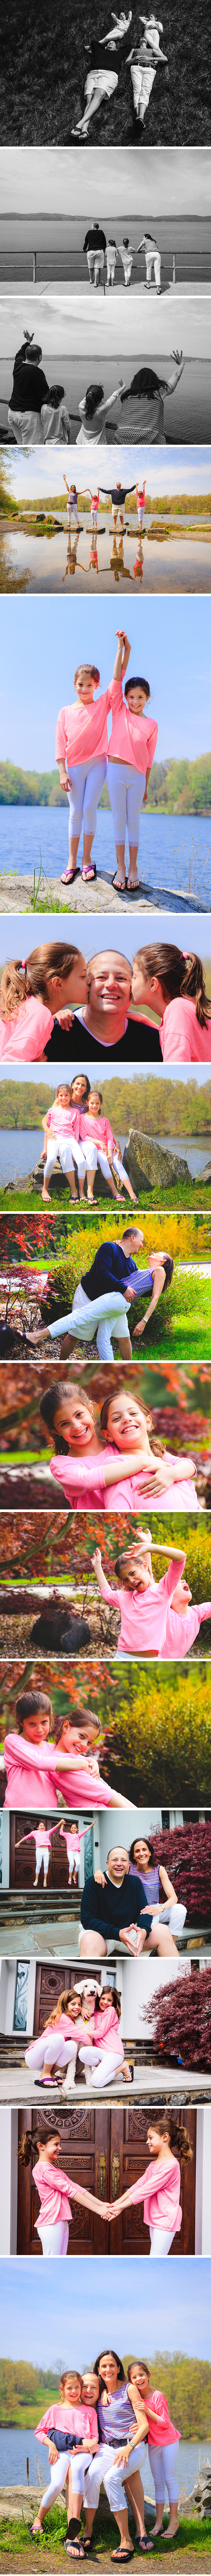 Robinson family photos in Briarcliff Manor and Rockefeller State Park in New York